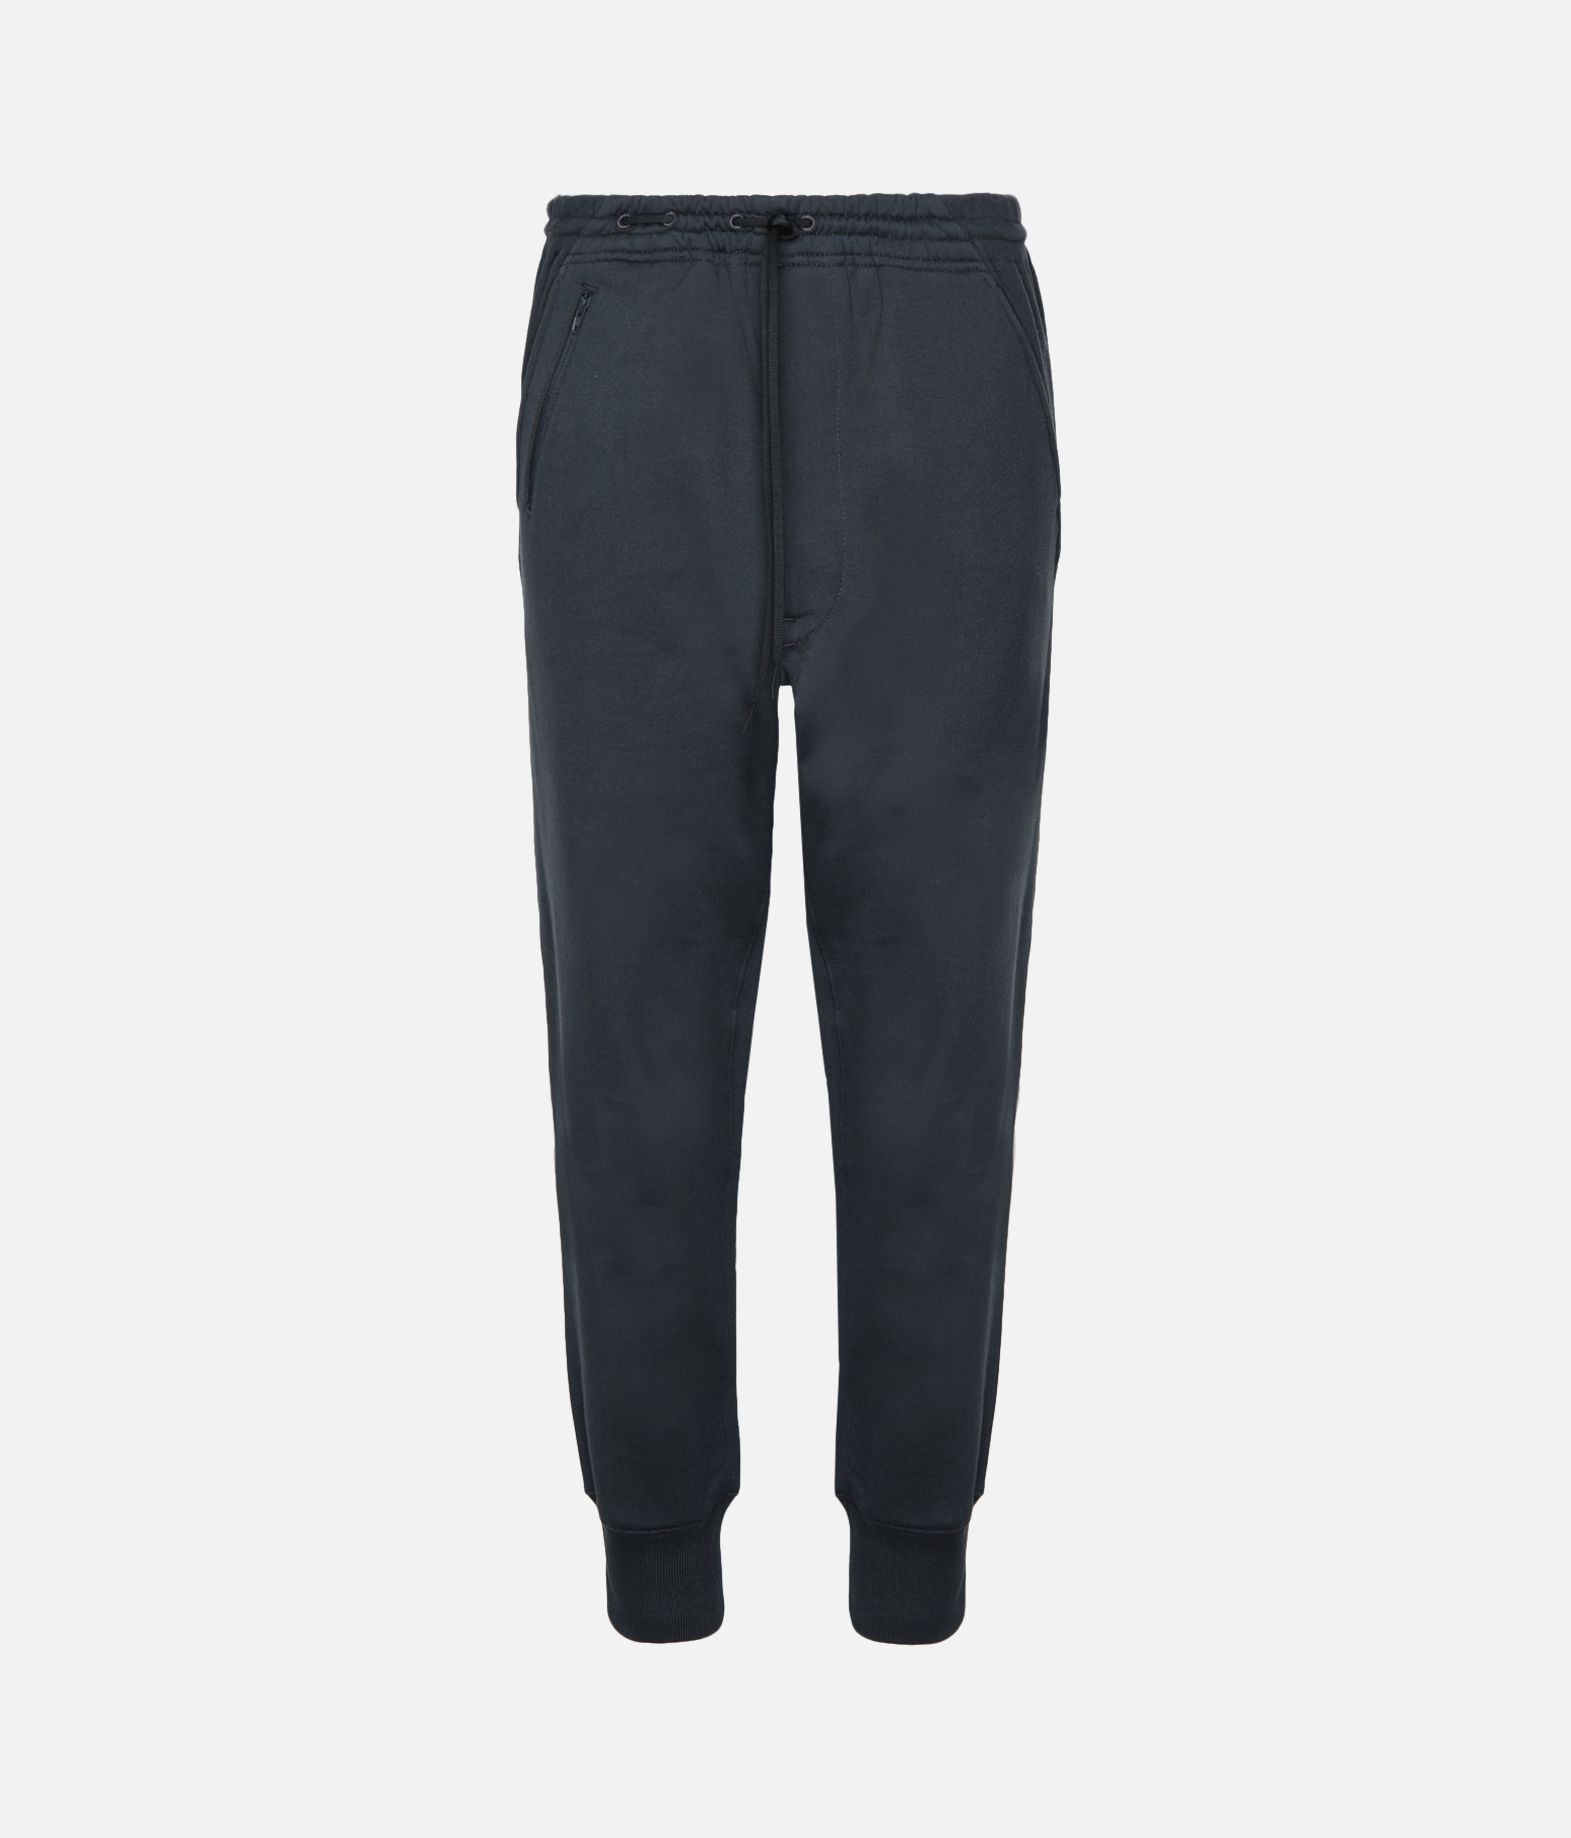 Y-3 Y-3 Classic Cuffed Pants Fleece-Hose Damen f